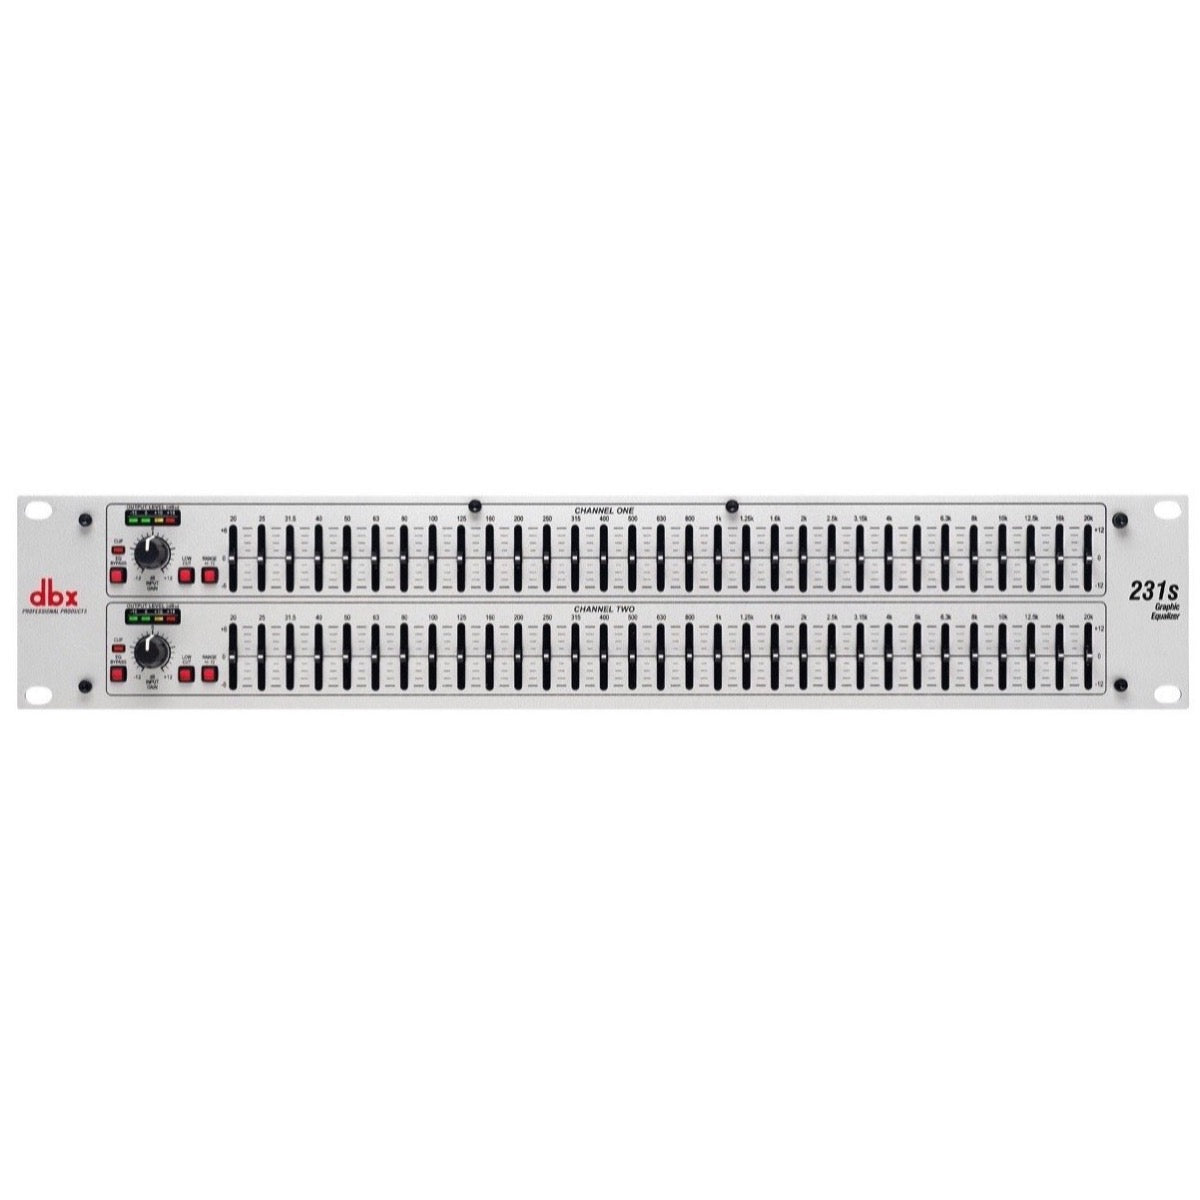 dbx 231S Dual 31-Band Graphic Equalizer